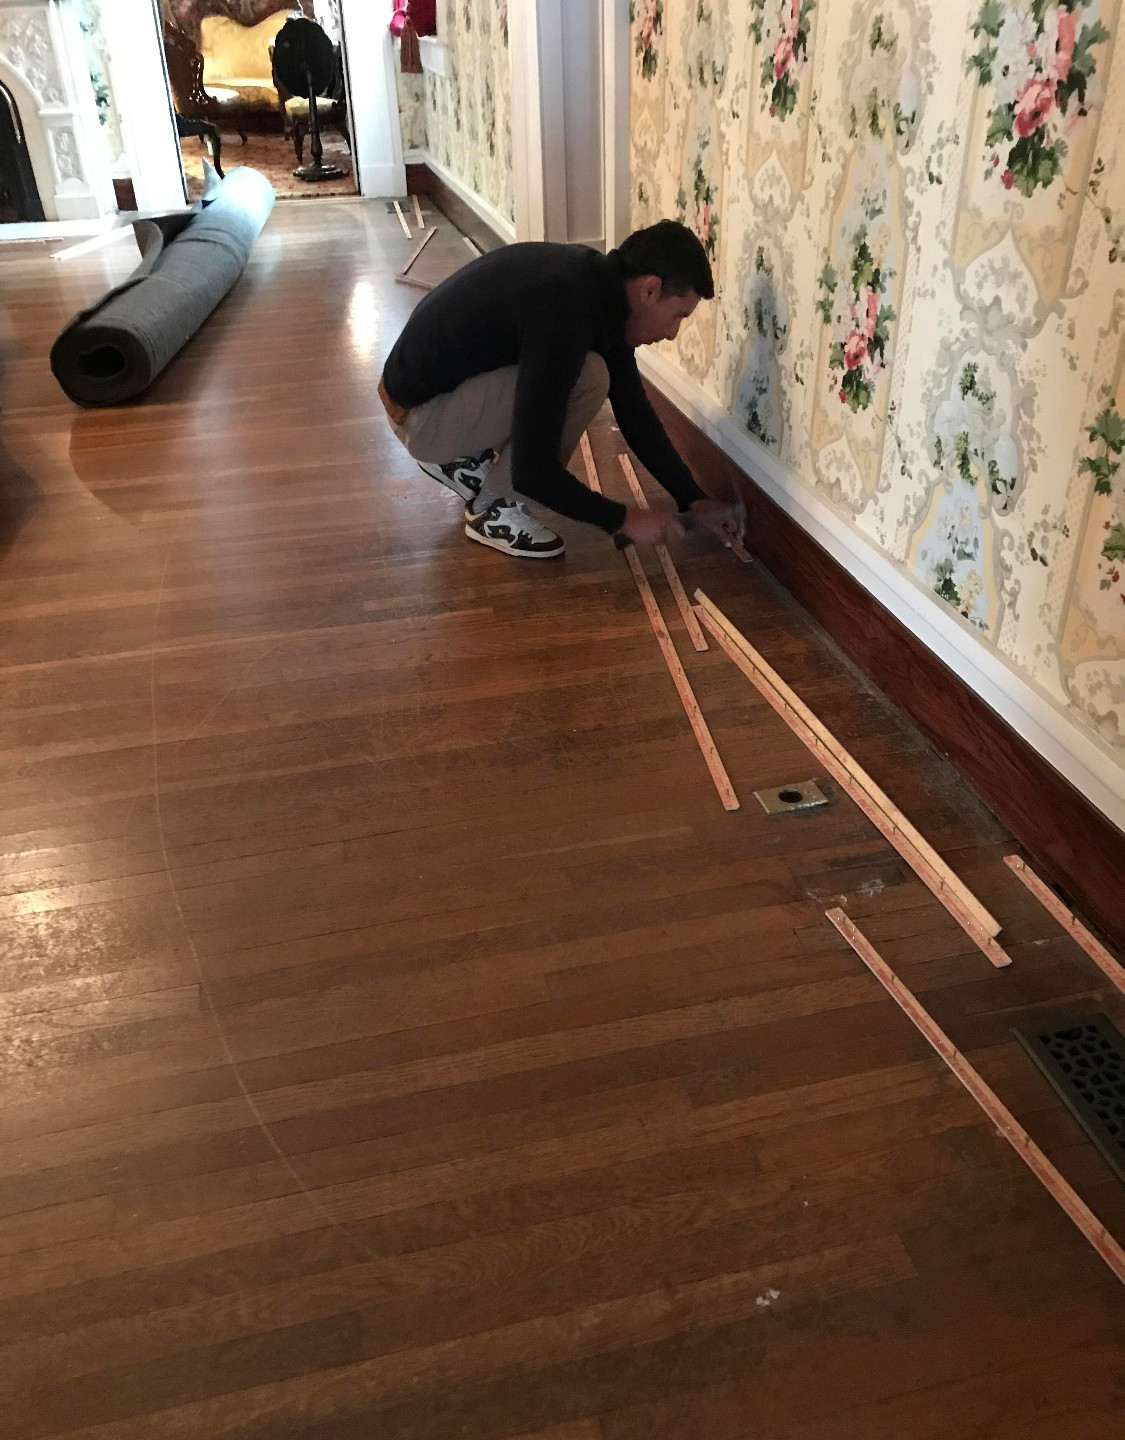 The preparation begins! Prior to installing the carpet, a tack strip was put in around the perimeter of the room. This will be used to secure the carpet.